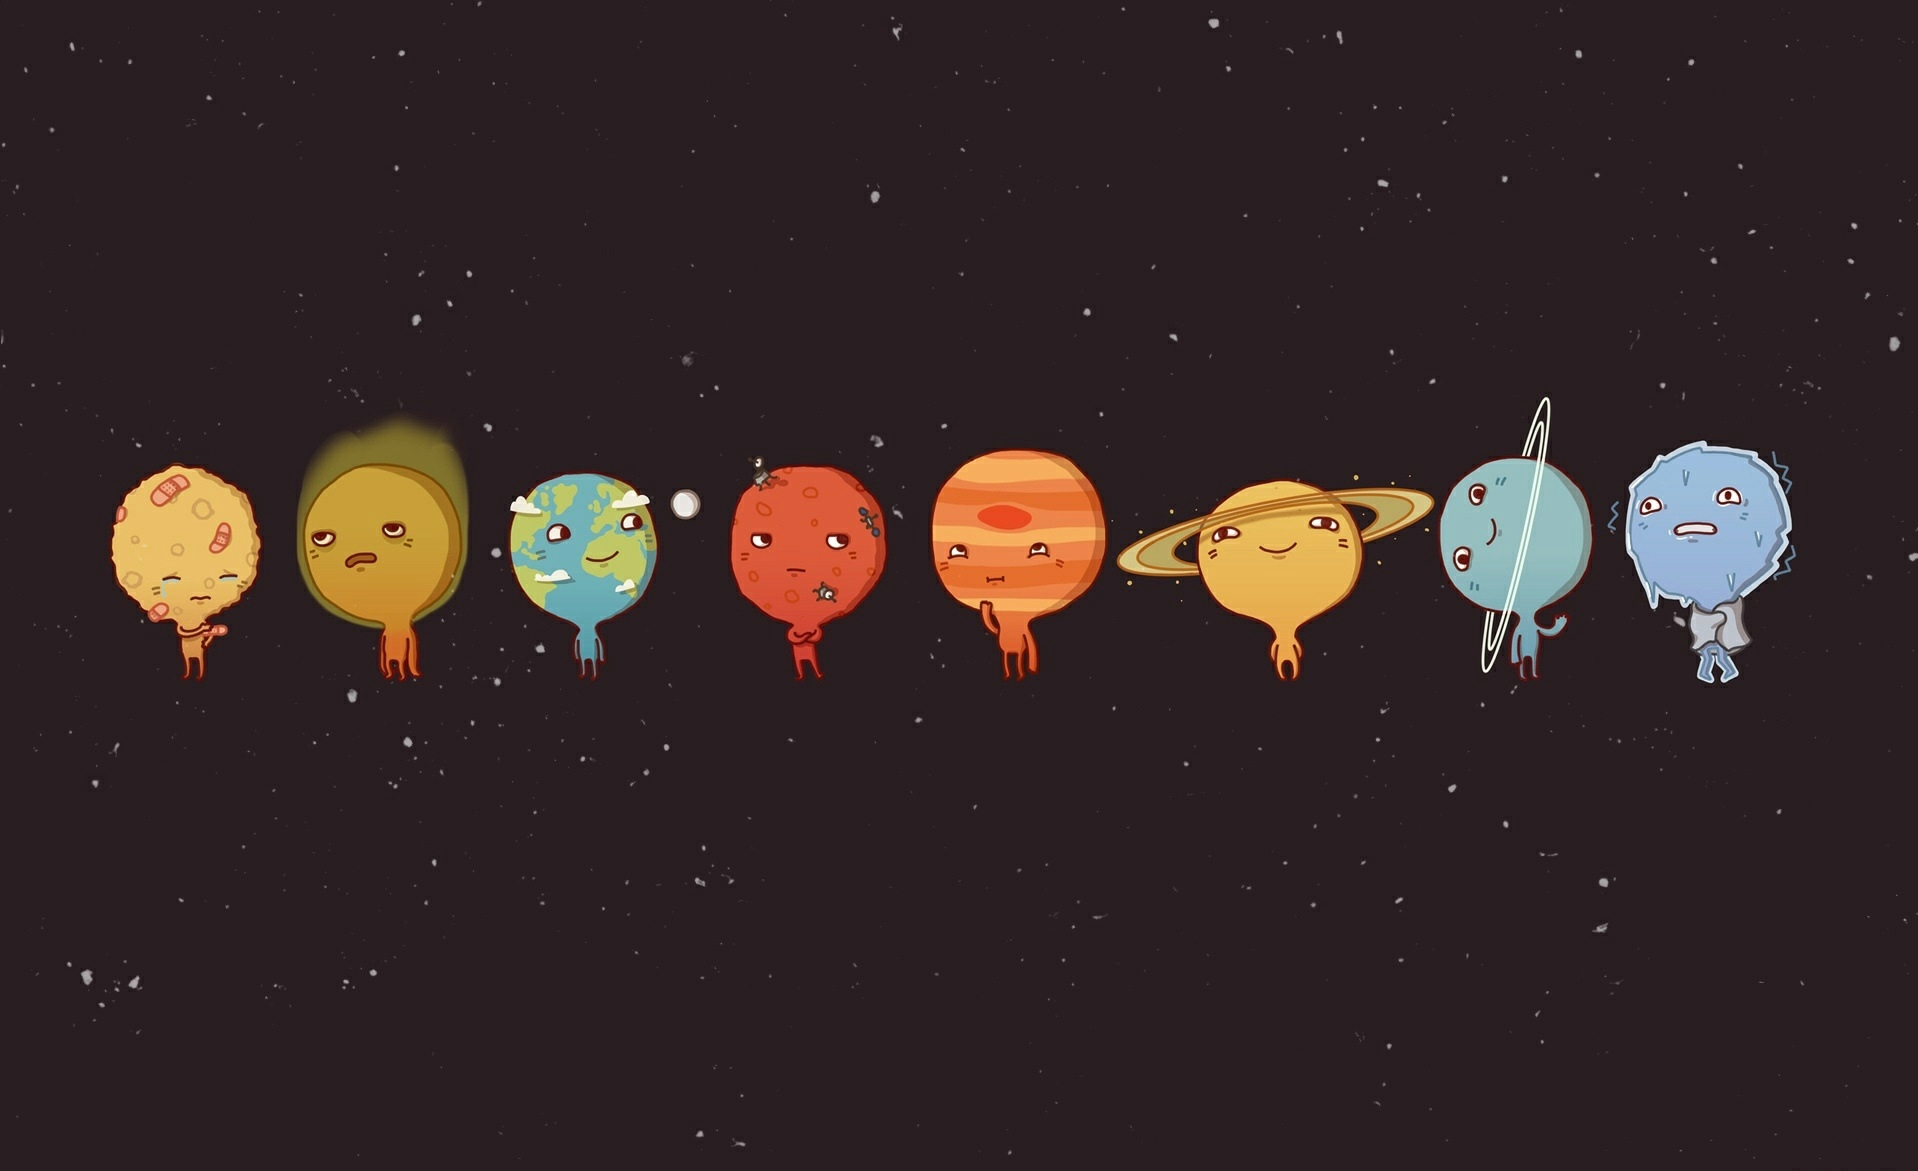 138428 download wallpaper Vector, Art, Picture, Drawing, Sky, Planets screensavers and pictures for free